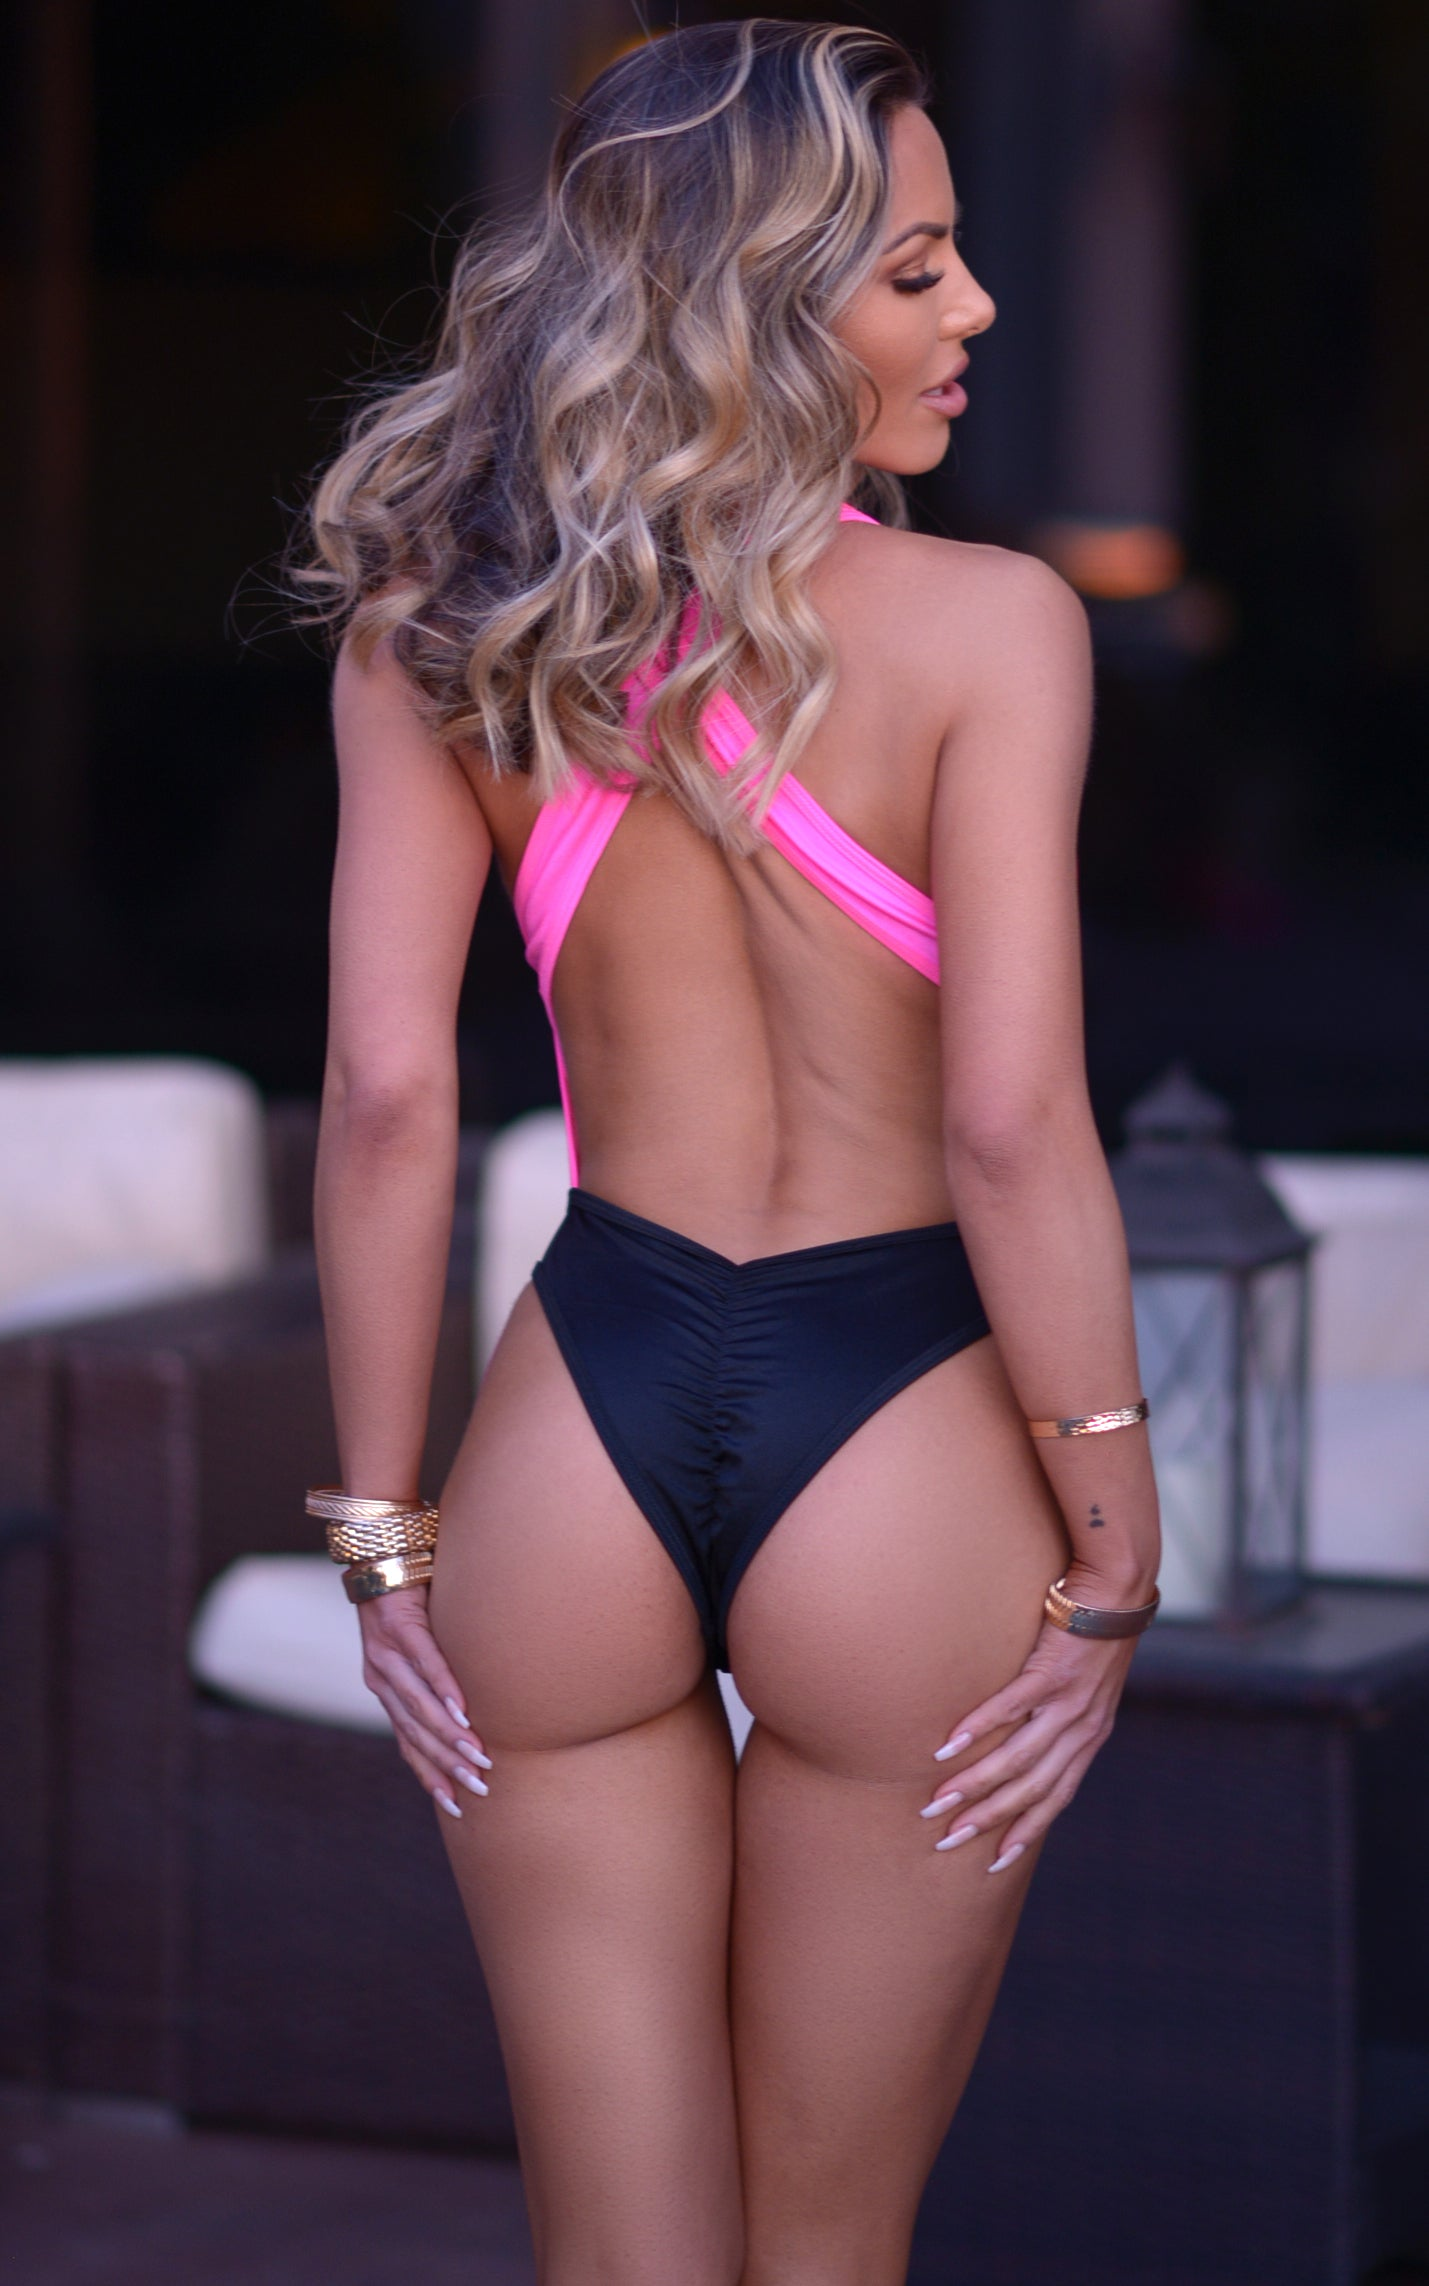 Verona: Color Block High Cut Monokini in Neon Pink x Black - Chynna Dolls Swimwear